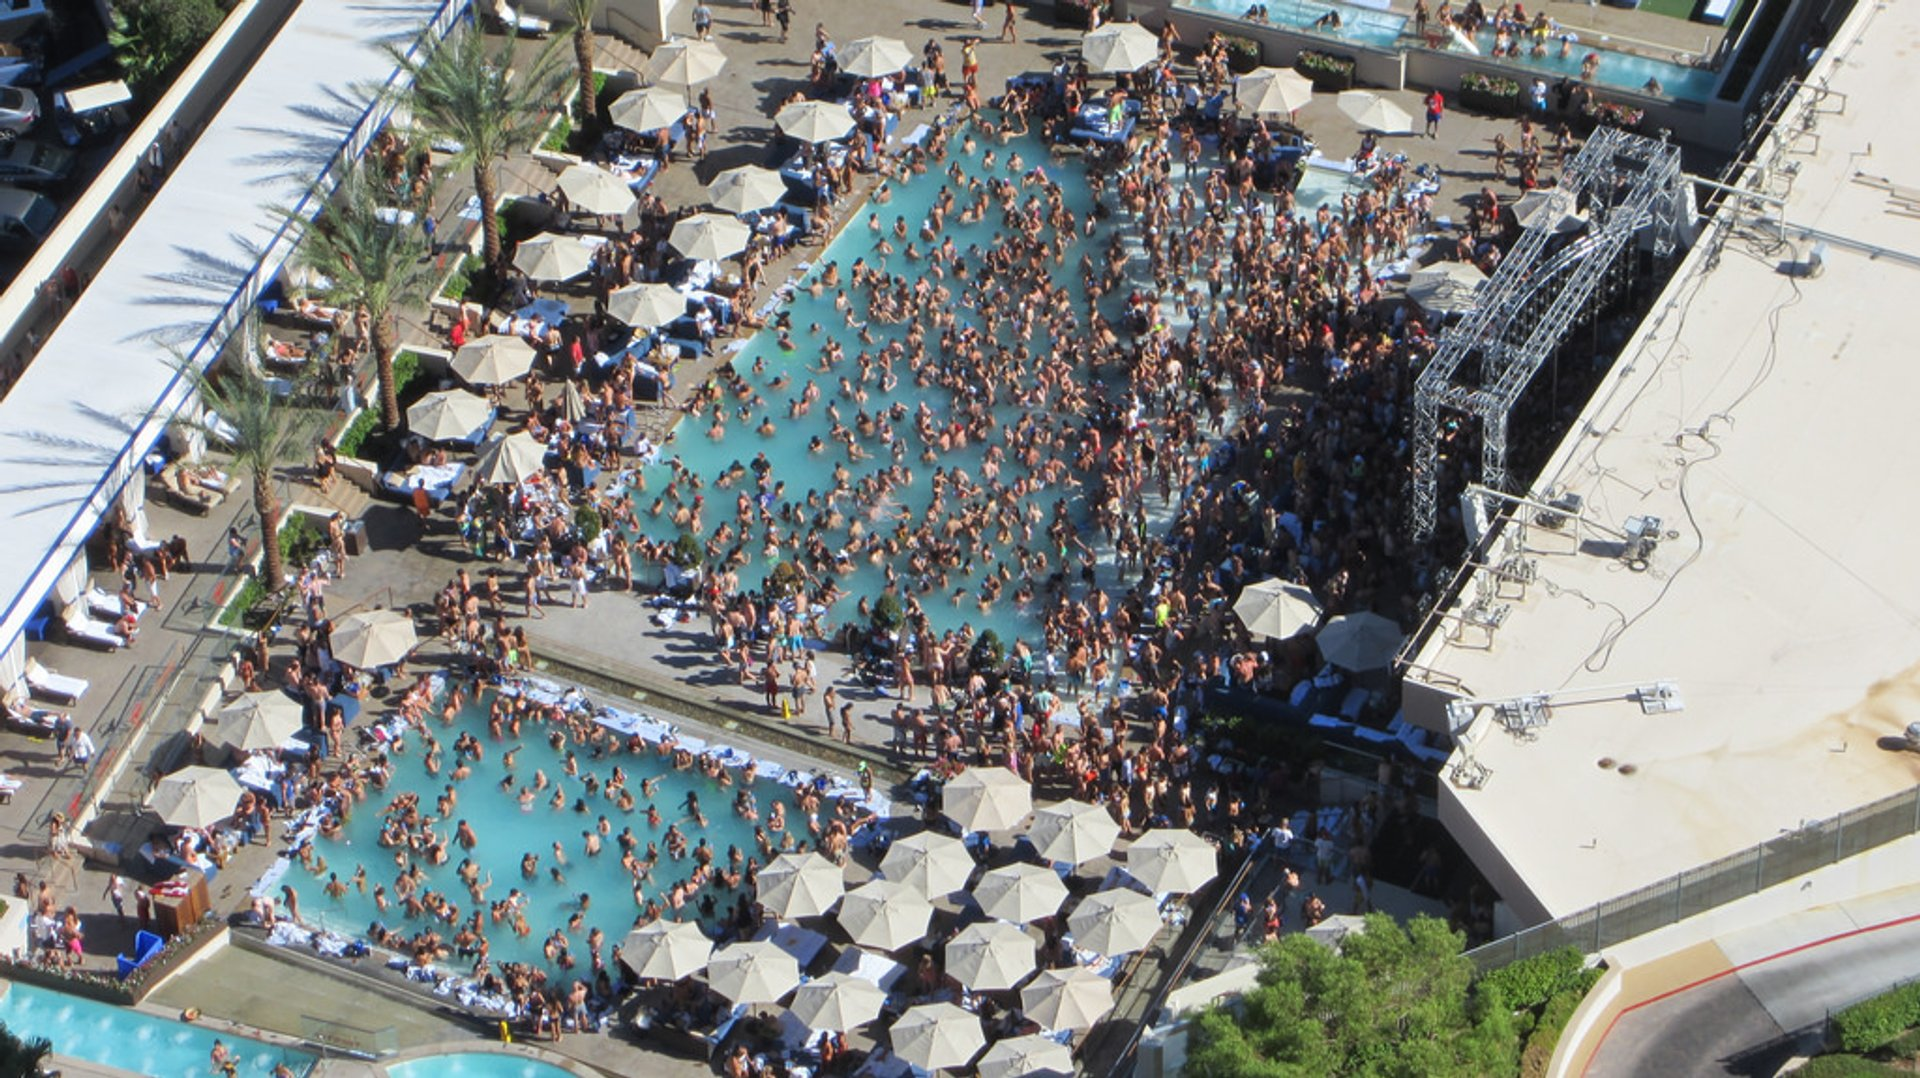 Pool Parties in Las Vegas 2020 - Best Time